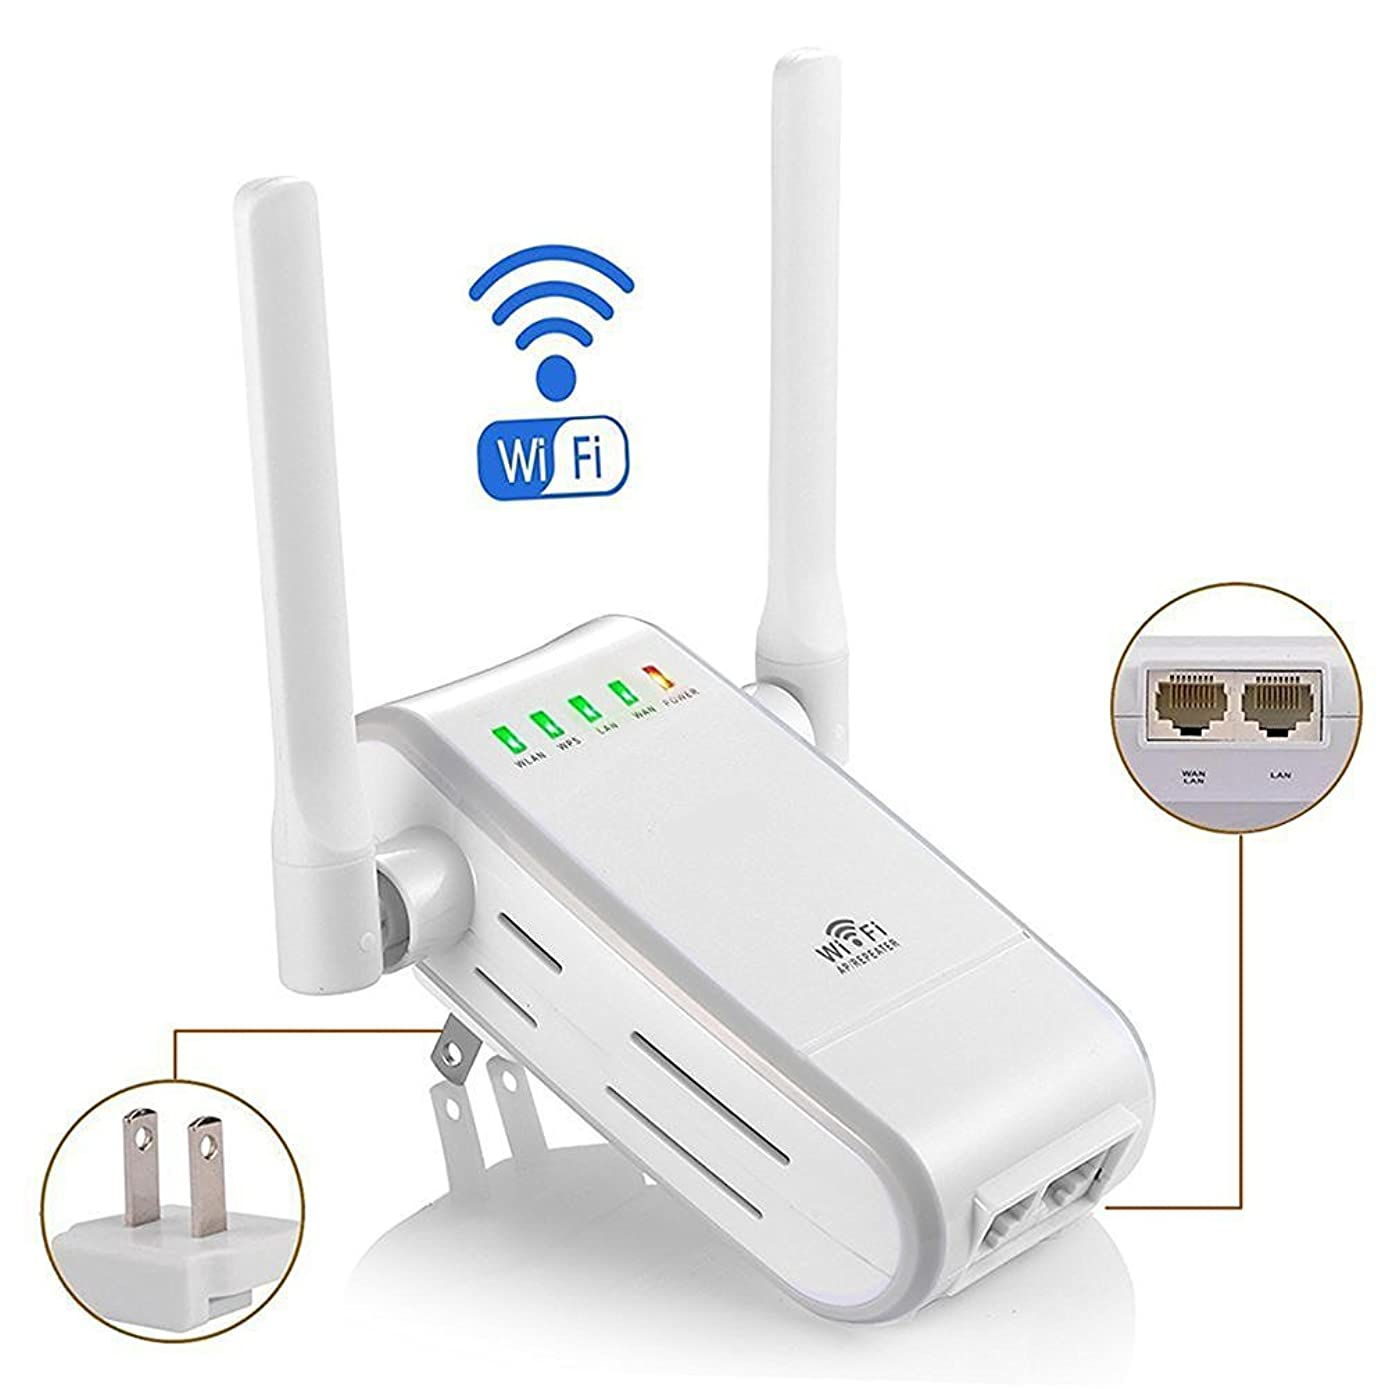 DHMXDC Wireless-N 300Mbps WiFi Range Extender Wireless Router/Repeater/AP/WPS Mini Dual External Antennas Wireless Booster Signal Wireless Access Point